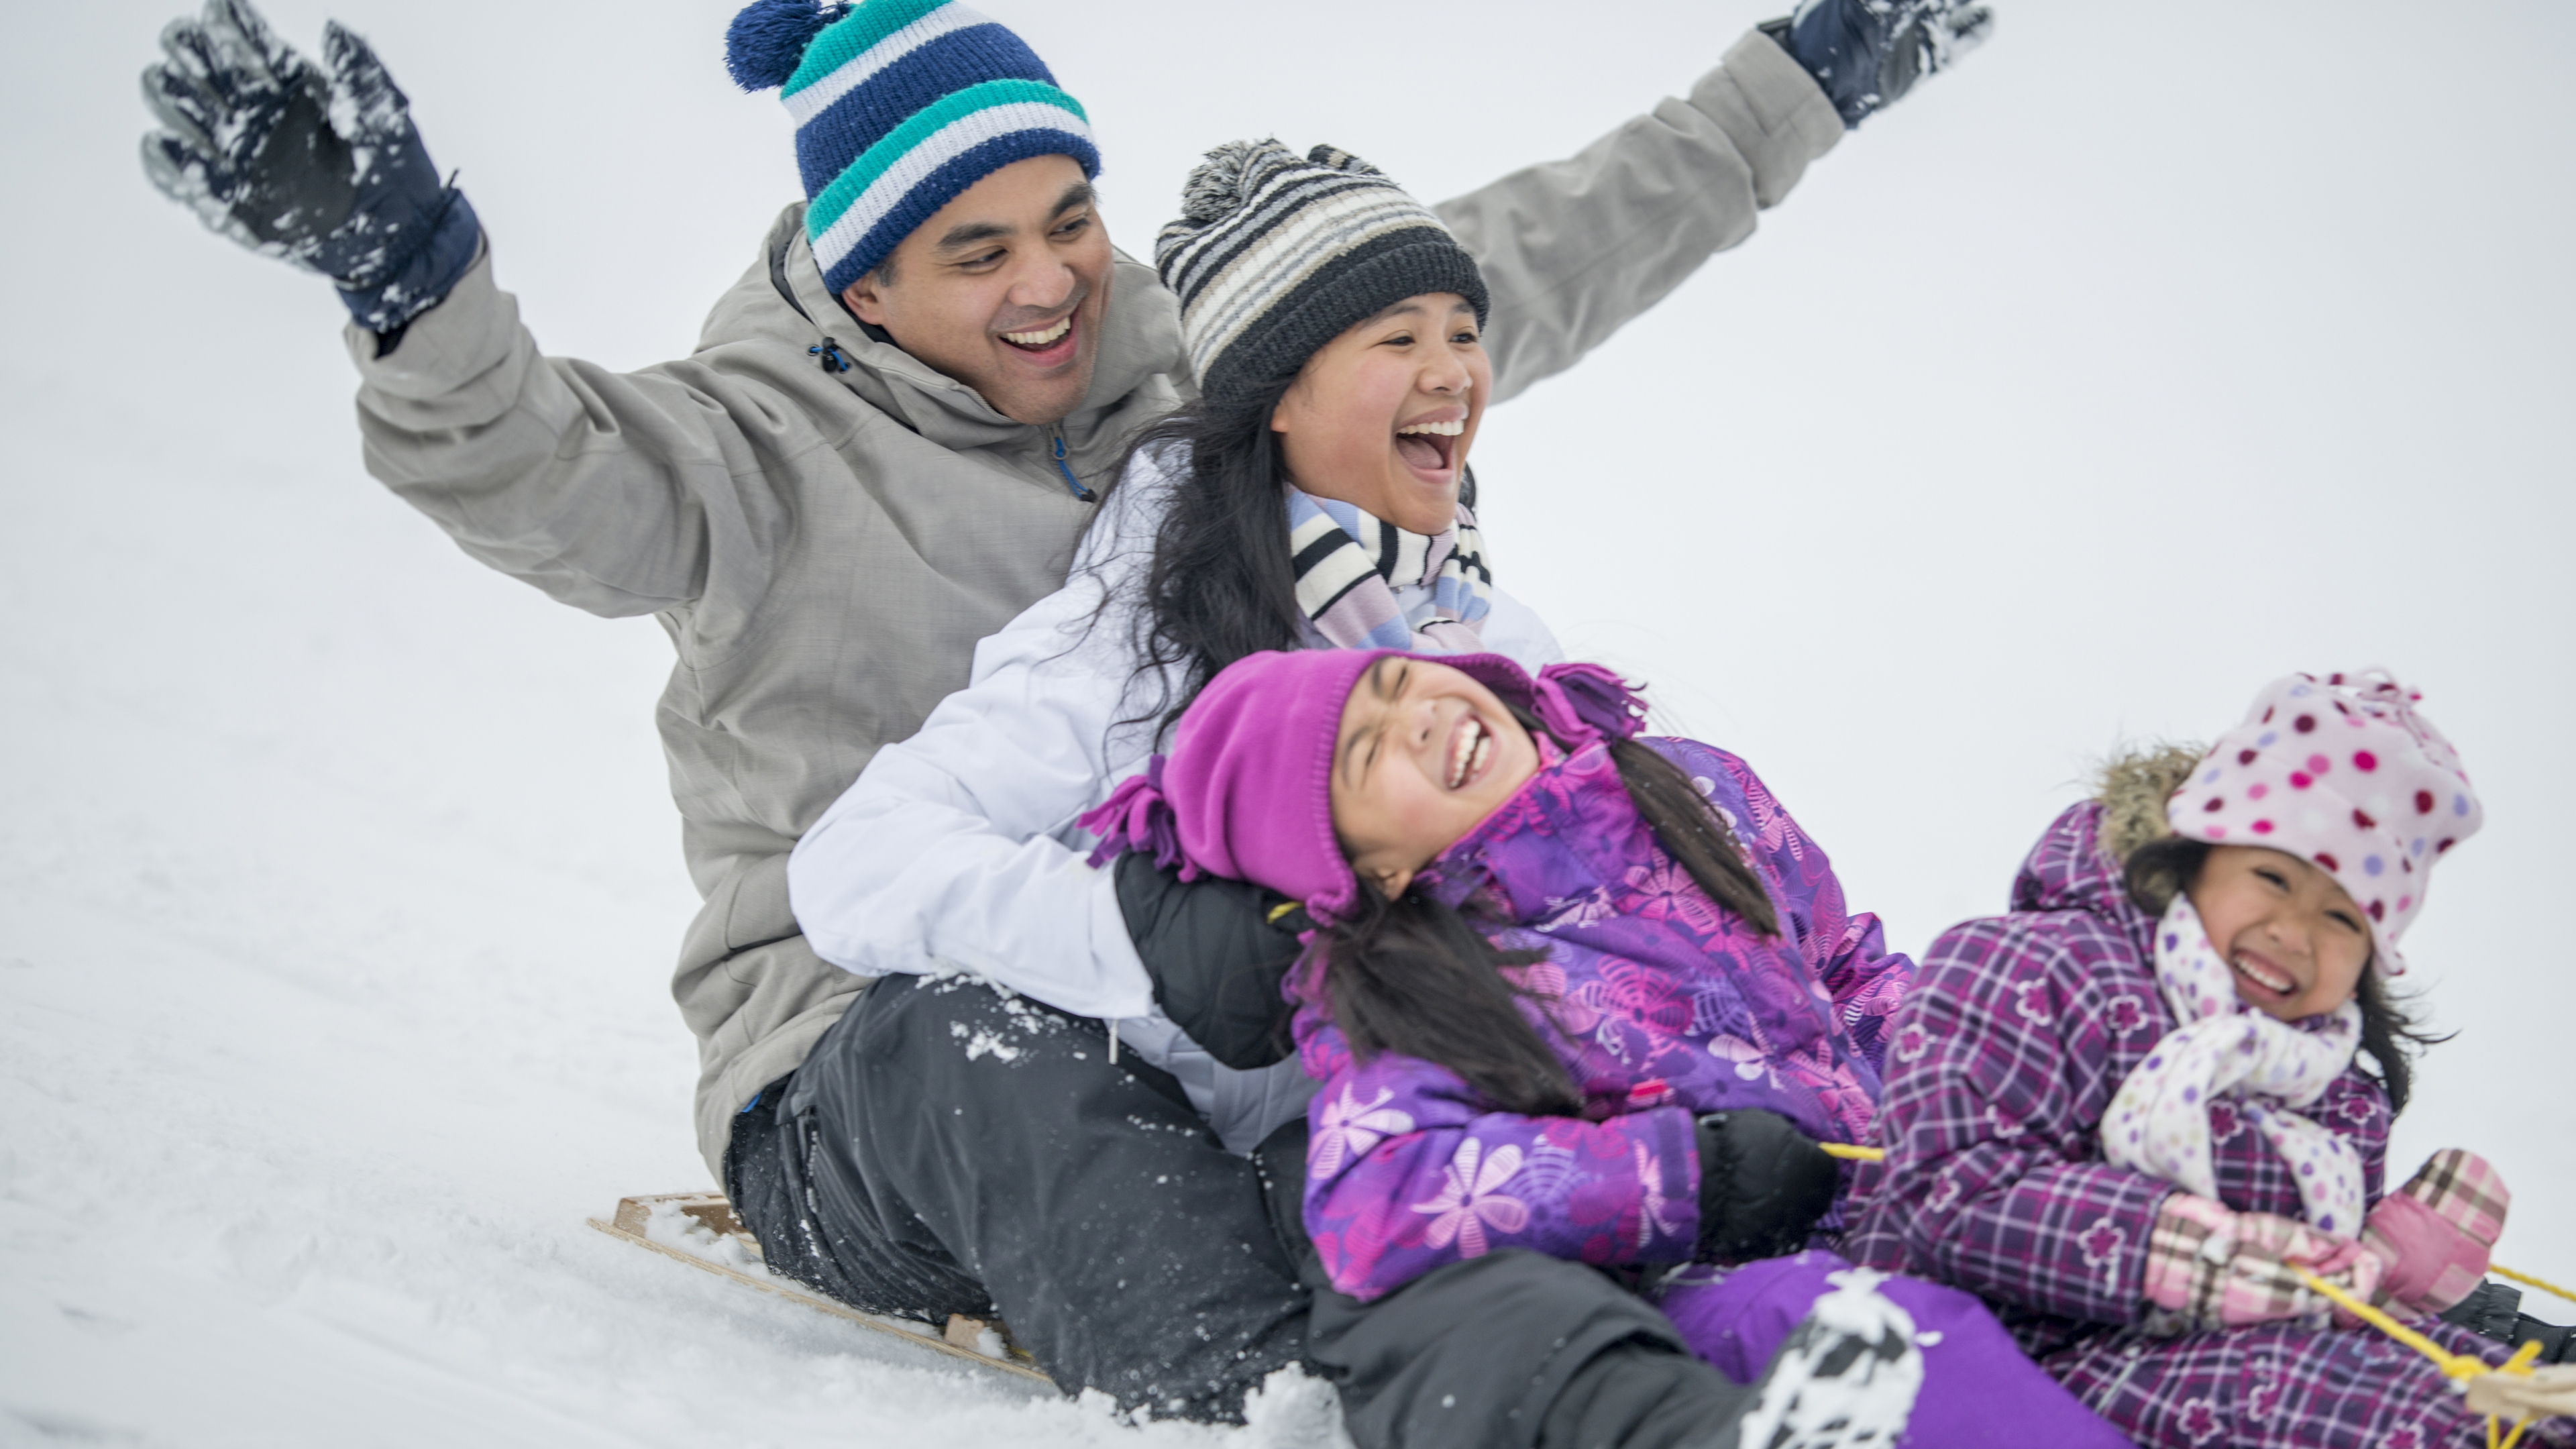 A laughing family of two parents and two young girls share a sled on a snow-covered hill.